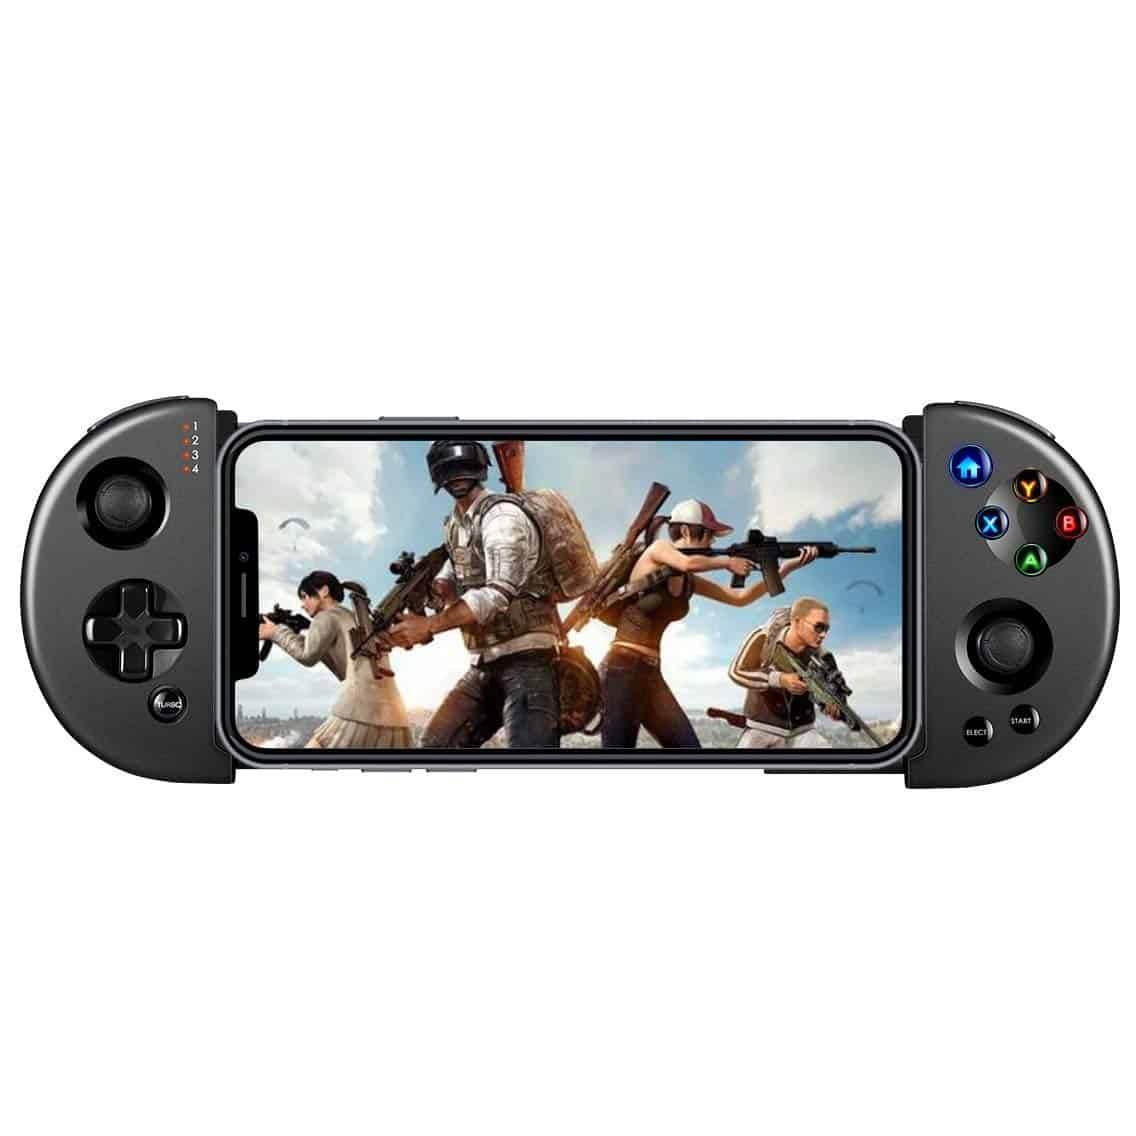 Wireless Android Game Controller, Retractable Telescopic Shock Connecting Joystick Gamepad Android Phone